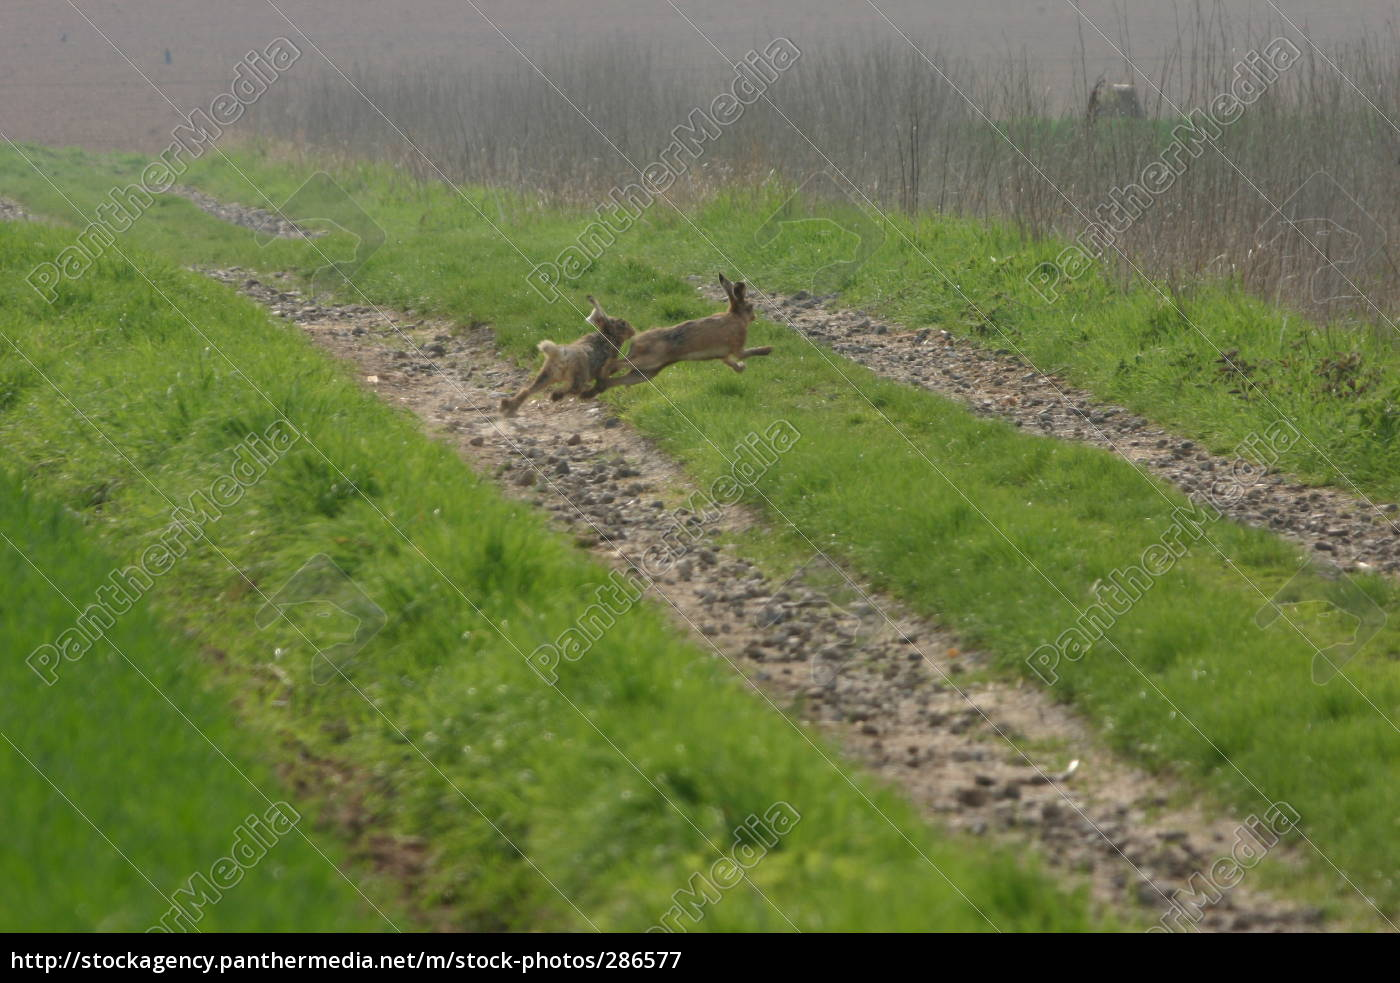 hares - 286577